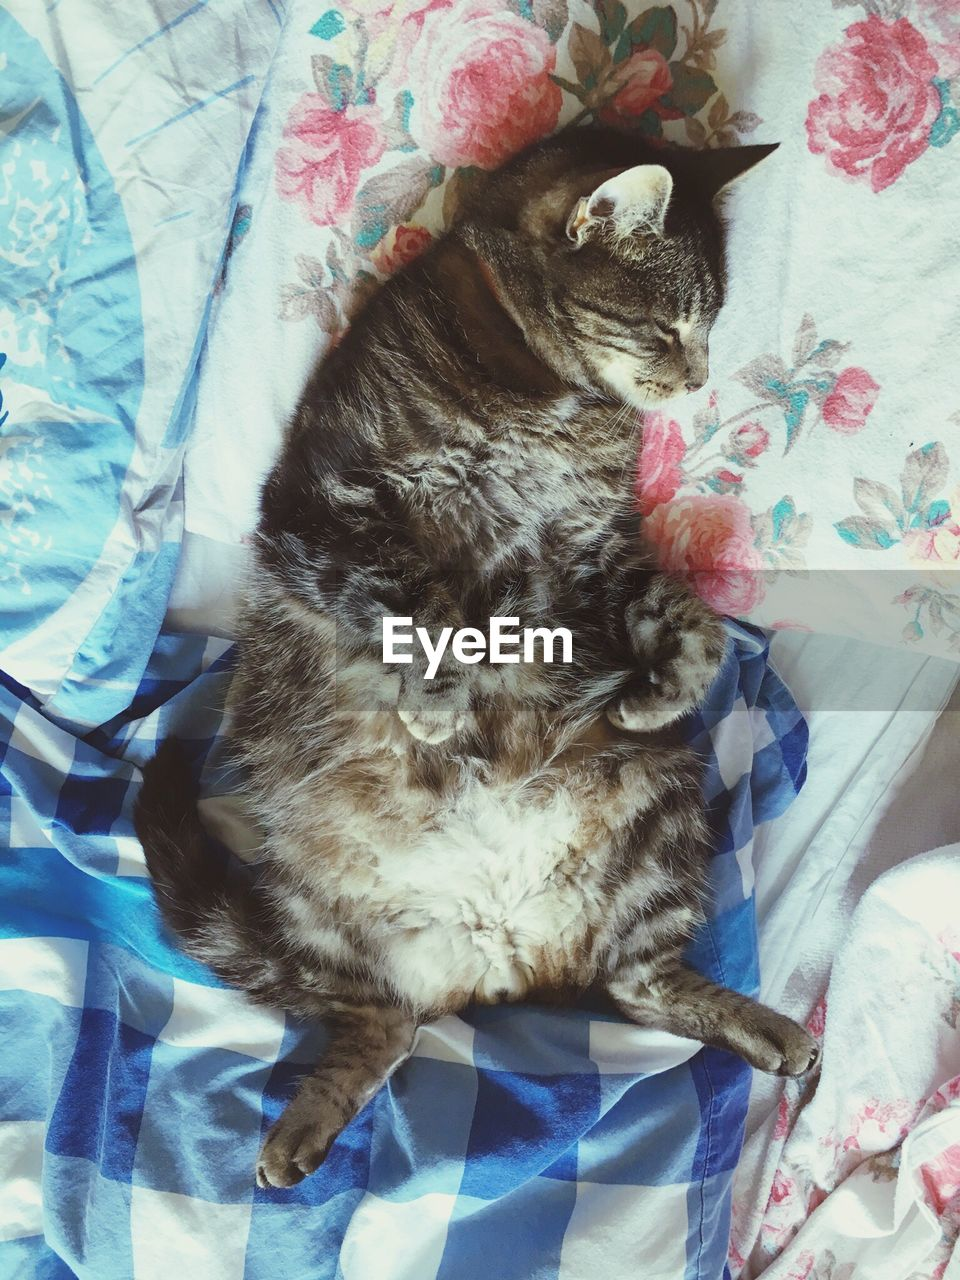 CLOSE-UP OF CAT SITTING ON BED WITH BLANKET